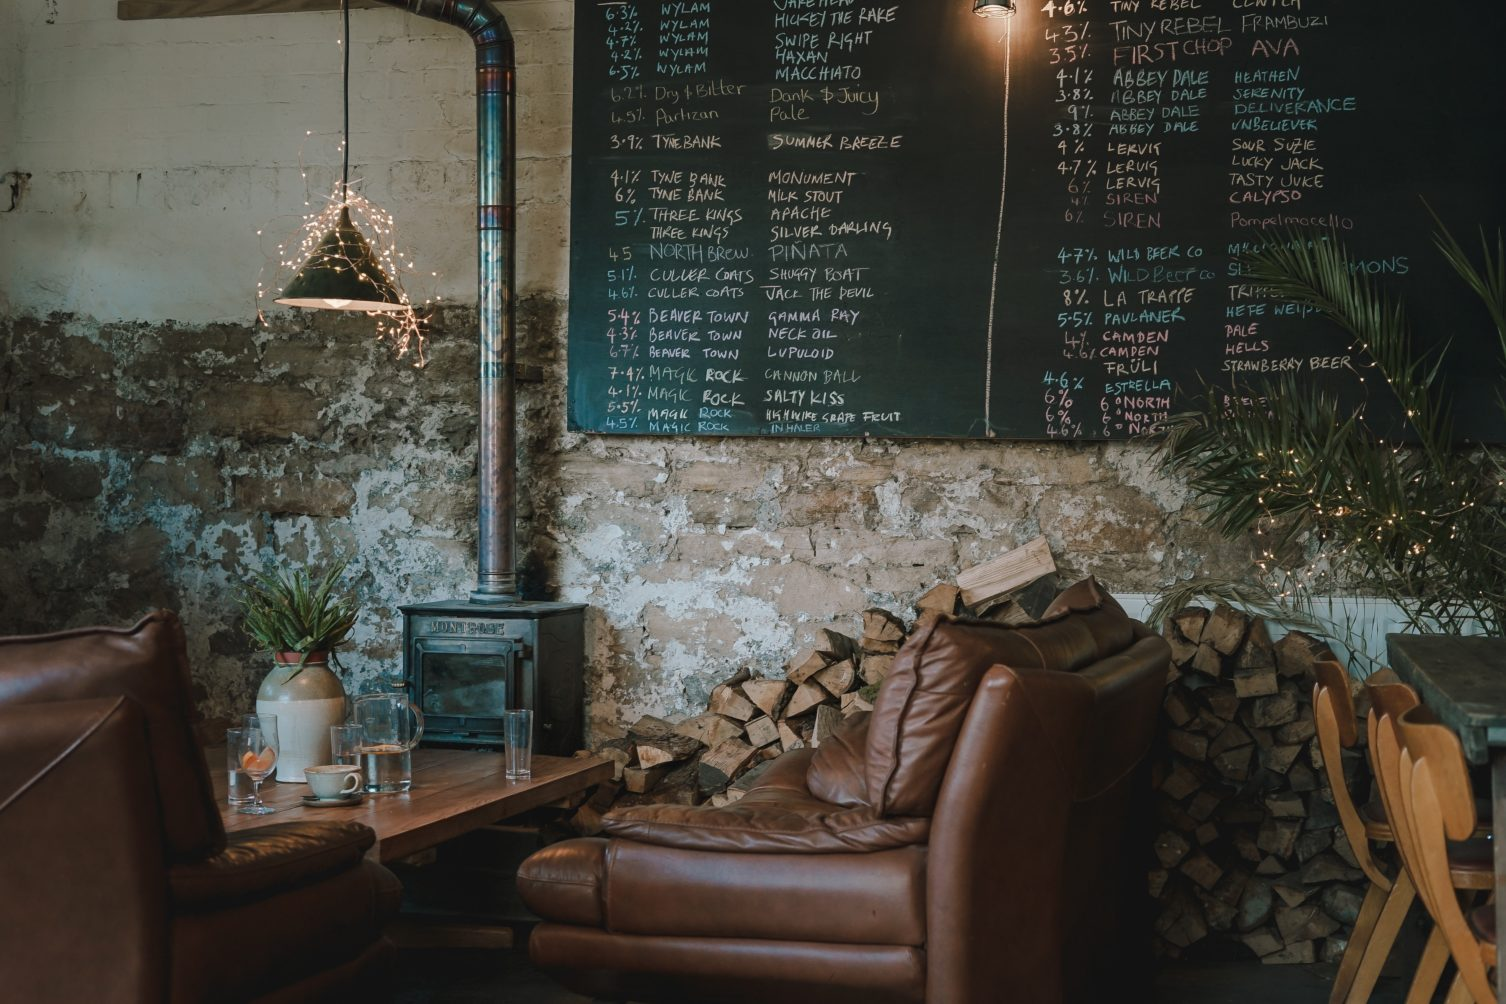 cafe with piles of wood against the wall